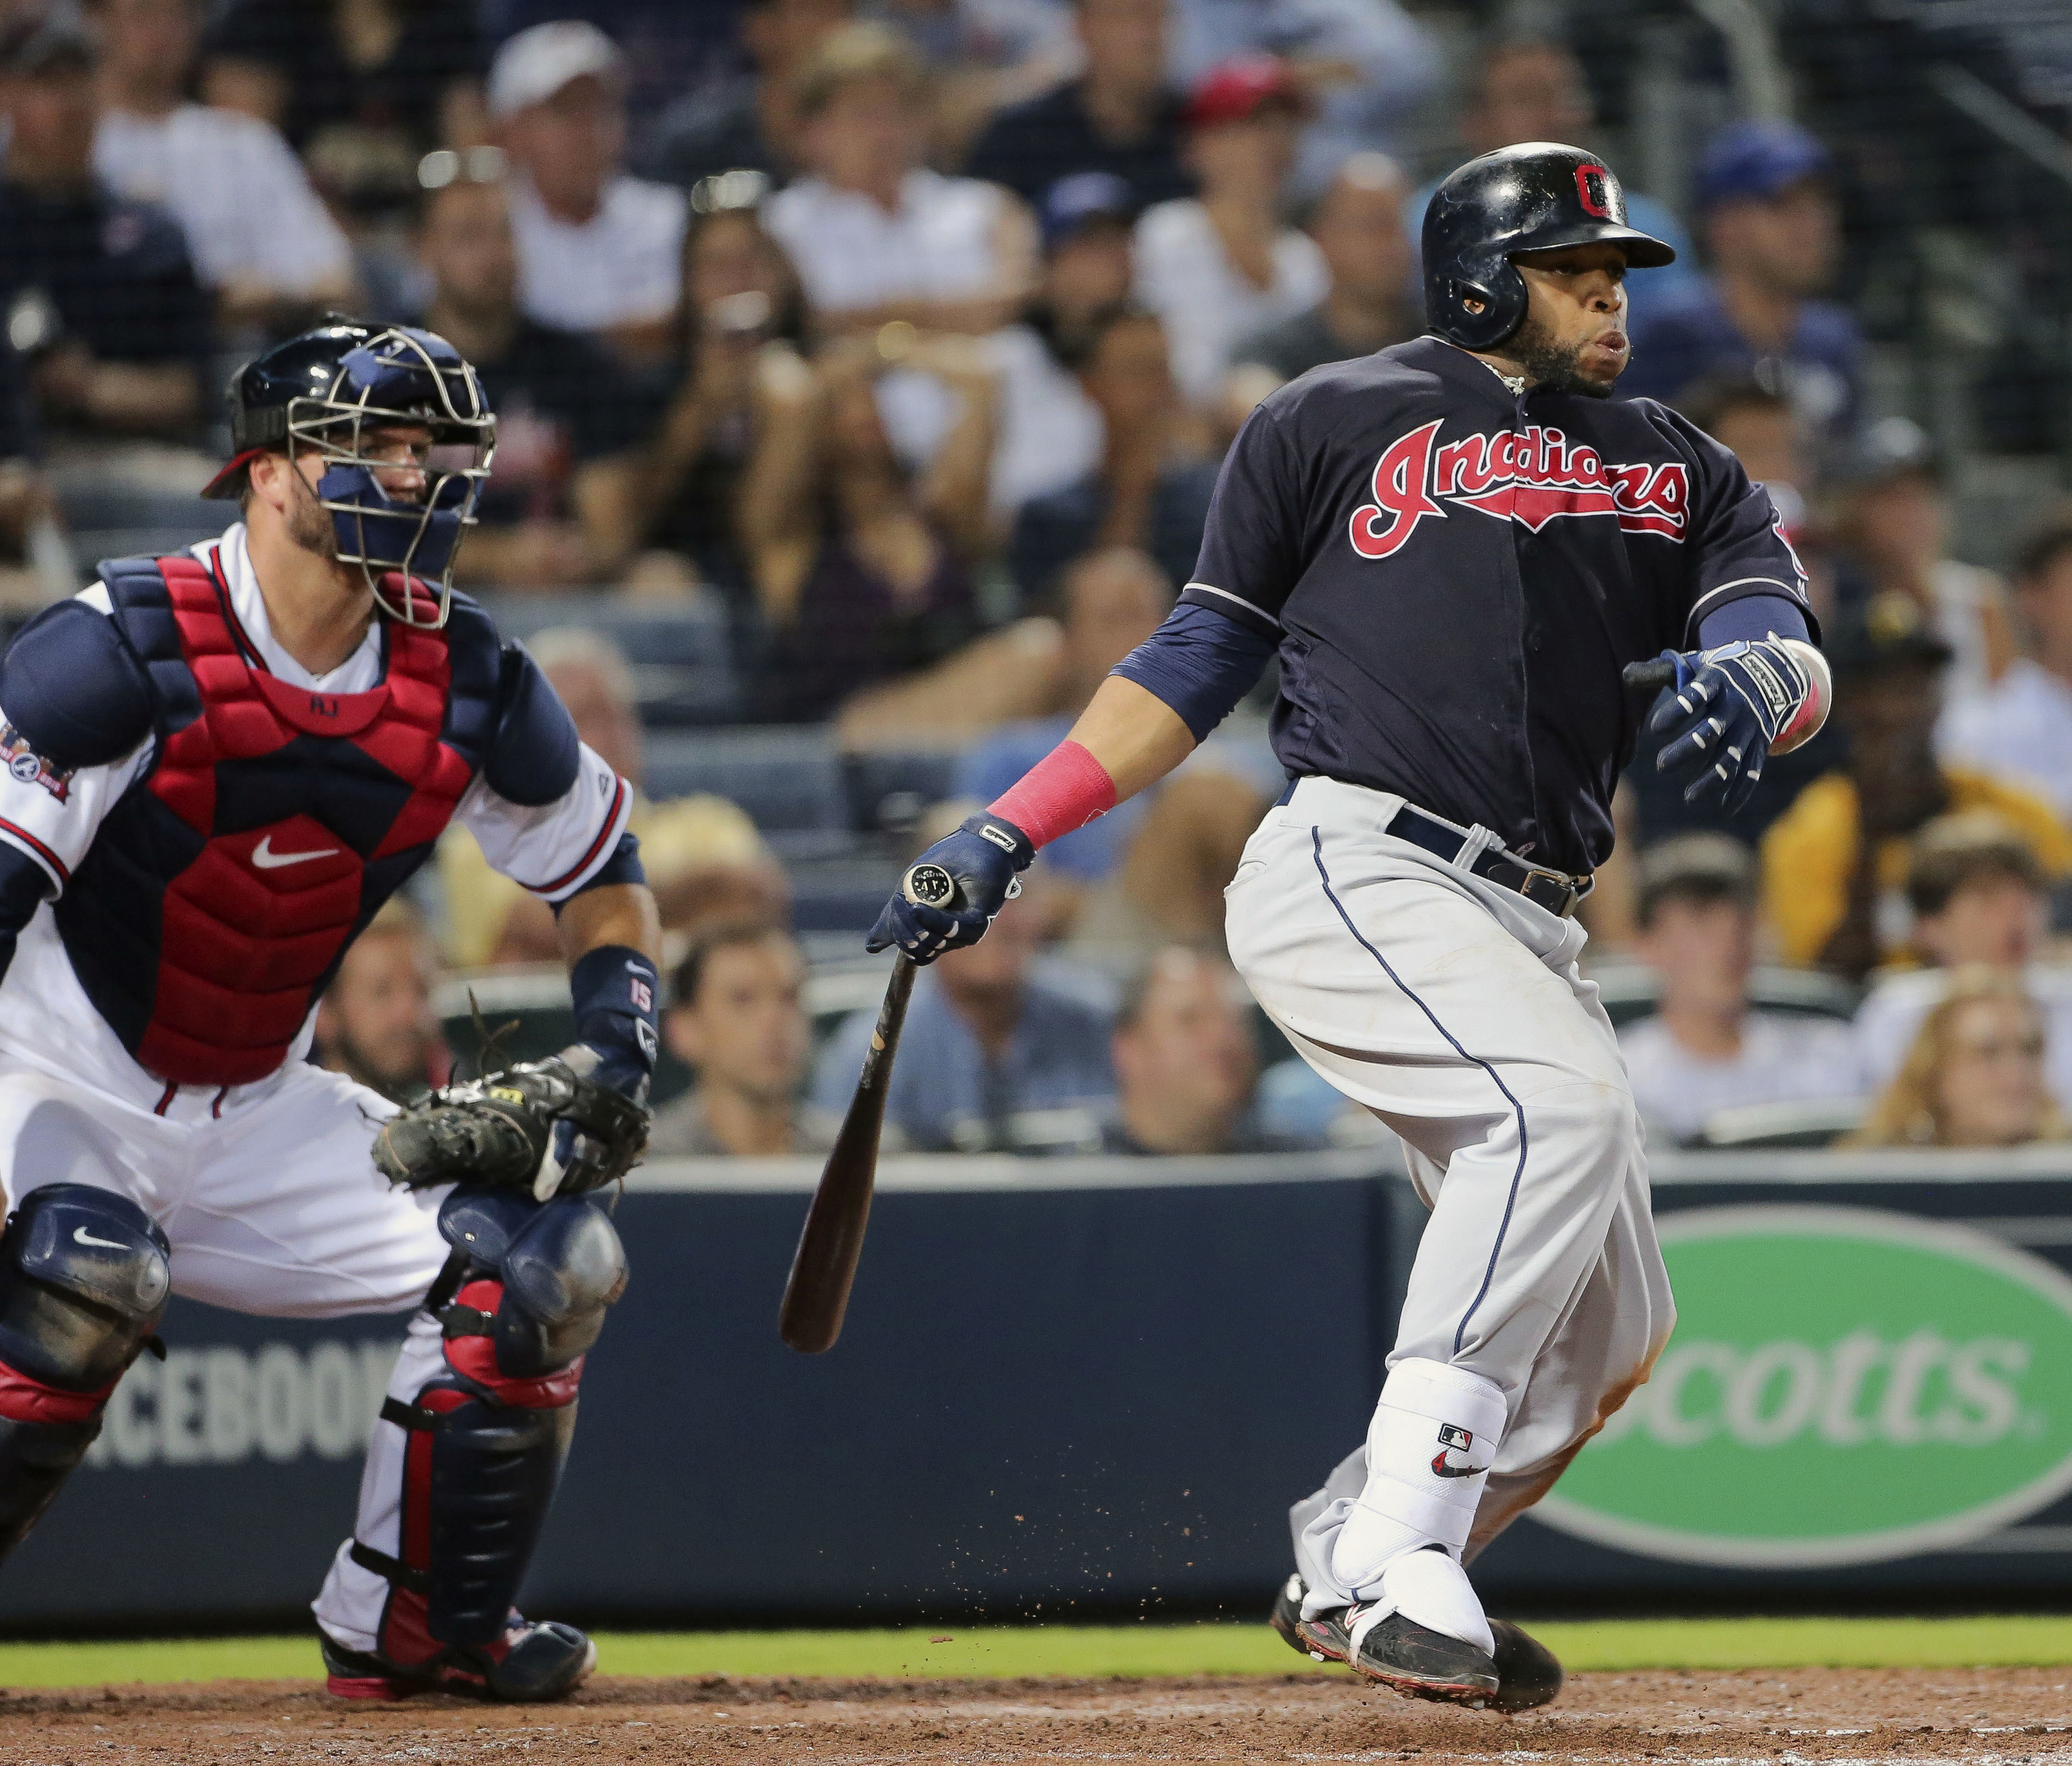 Cleveland Indians' Carlos Santana, right, drives in a run with a base as Atlanta Braves catcher A.J. Pierzynski looks on in the ninth inning of a baseball game Tuesday, June 28, 2016, in Atlanta. (AP Photo/John Bazemore)